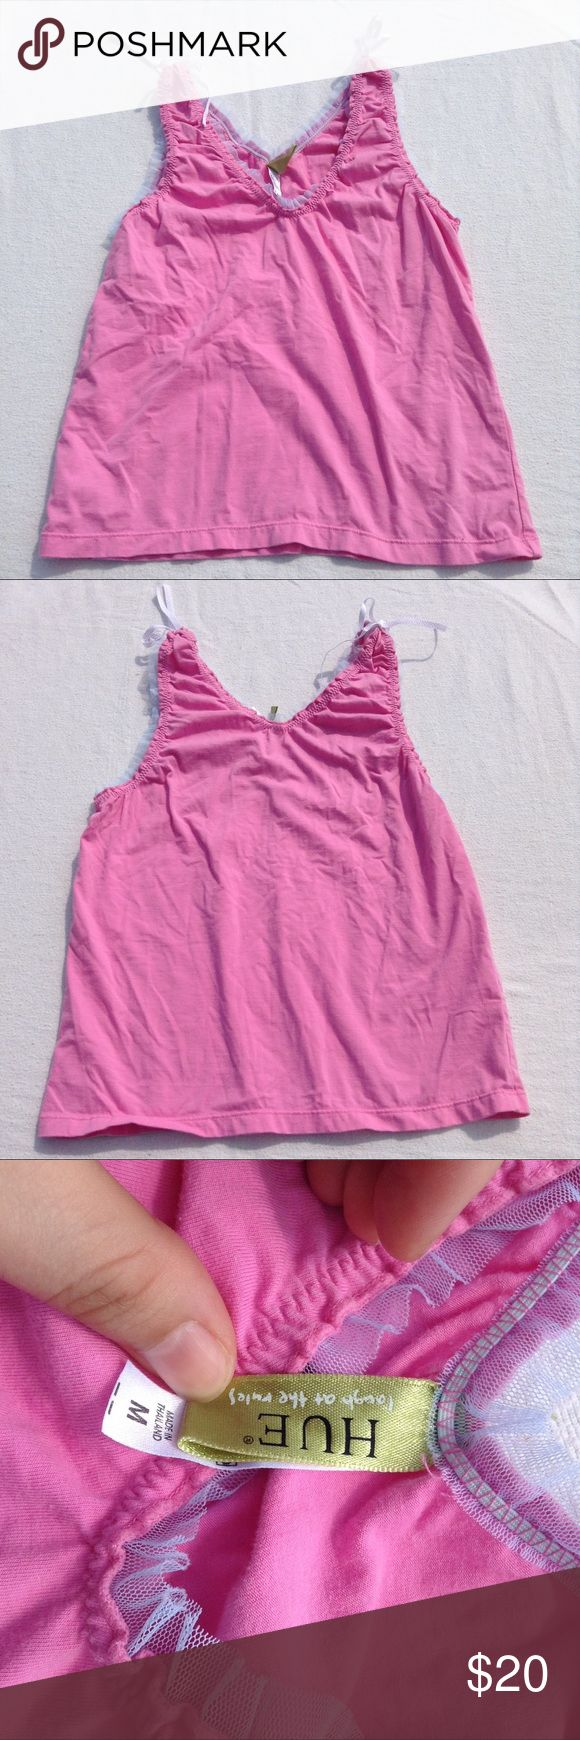 Vintage Frilly Pink Tank Top Fun girly tank top. Measures about 15.5 inches in width and 20.5 inches in length from top of straps to the bottom of the shirt. 95% cotton and 5% spandex. HUE Tops Tank Tops